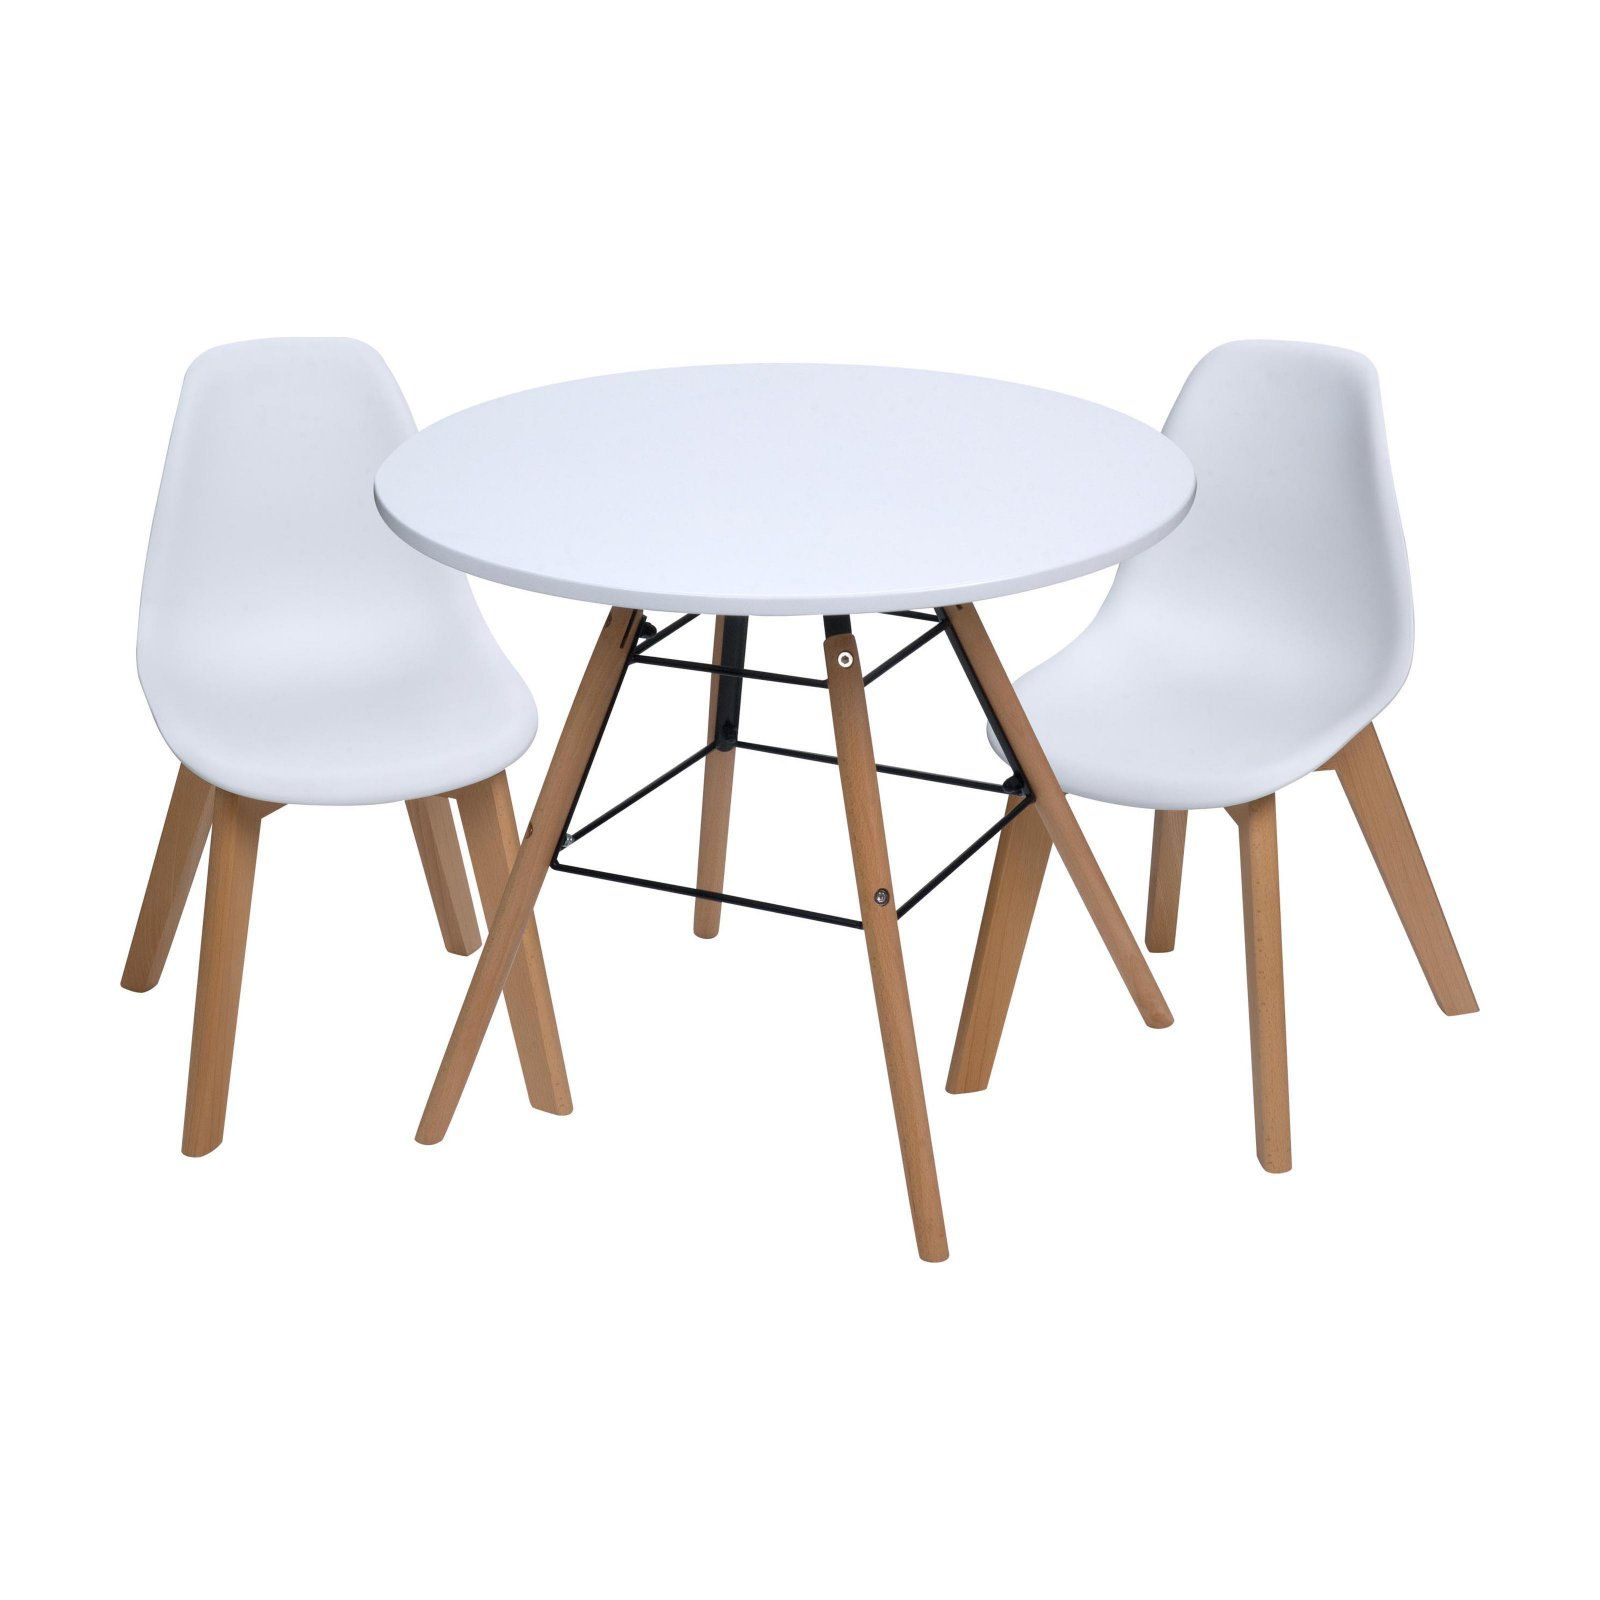 Gift Mark Mid Century Modern Round Kids Table With White Chairs